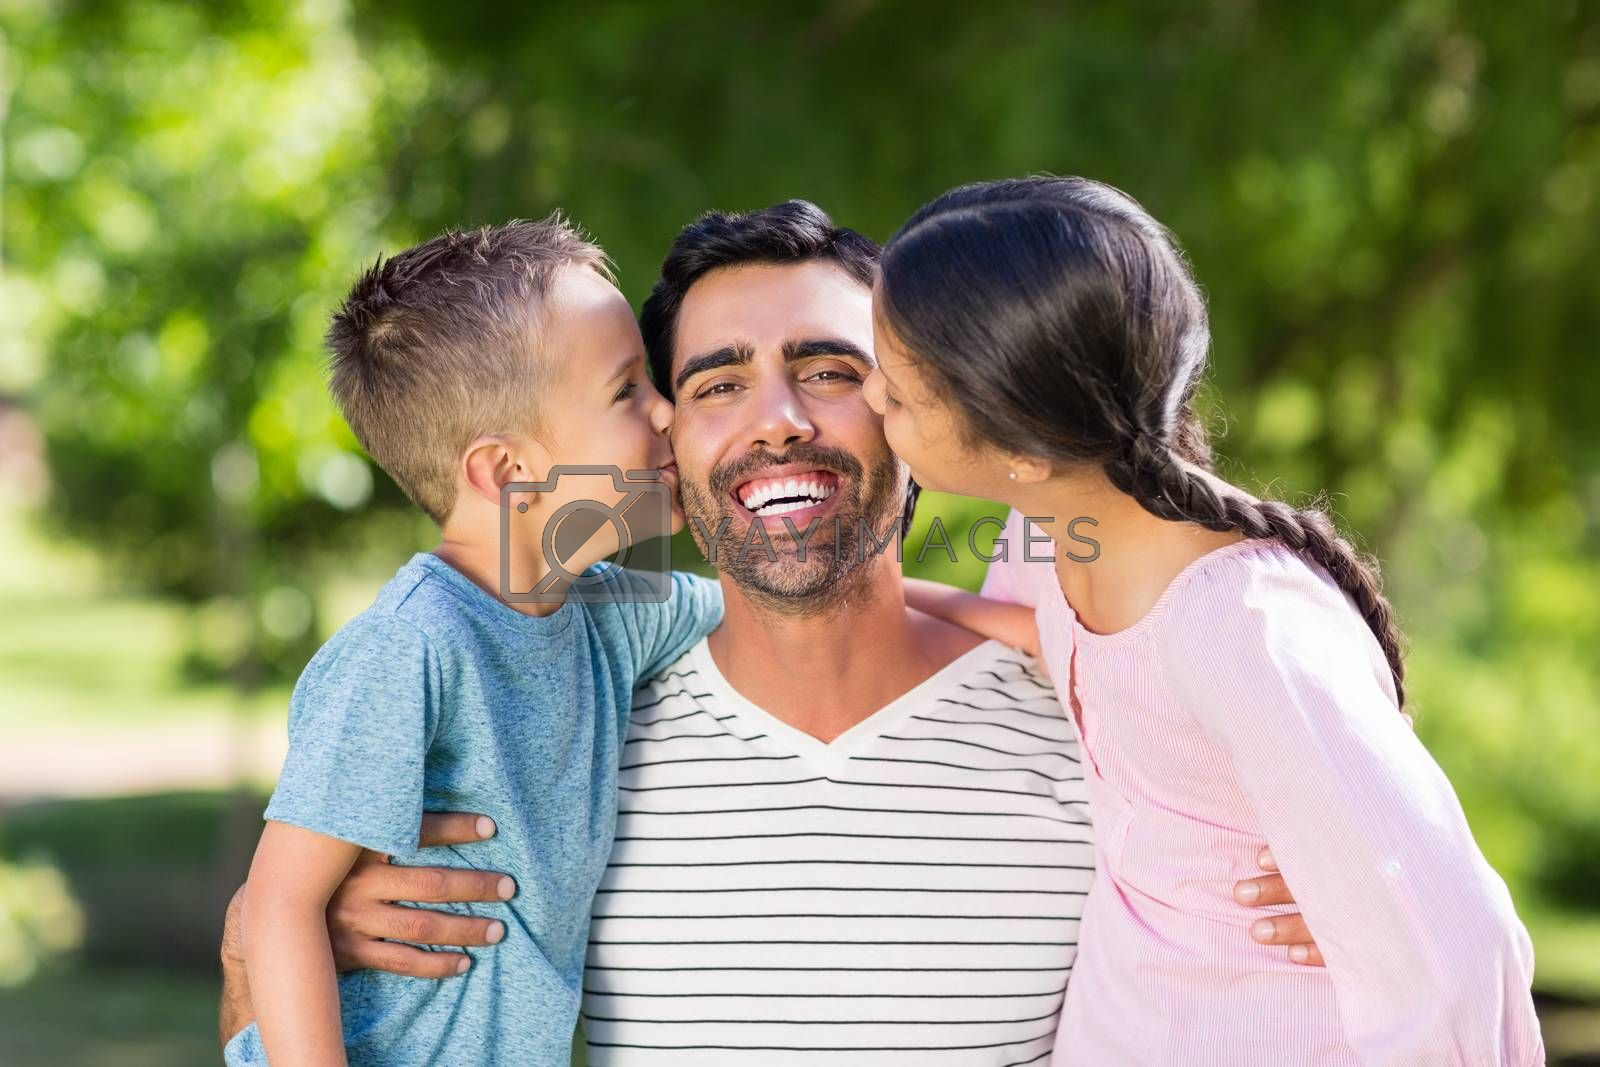 Father having fun with his son and daughter in park on a sunny day